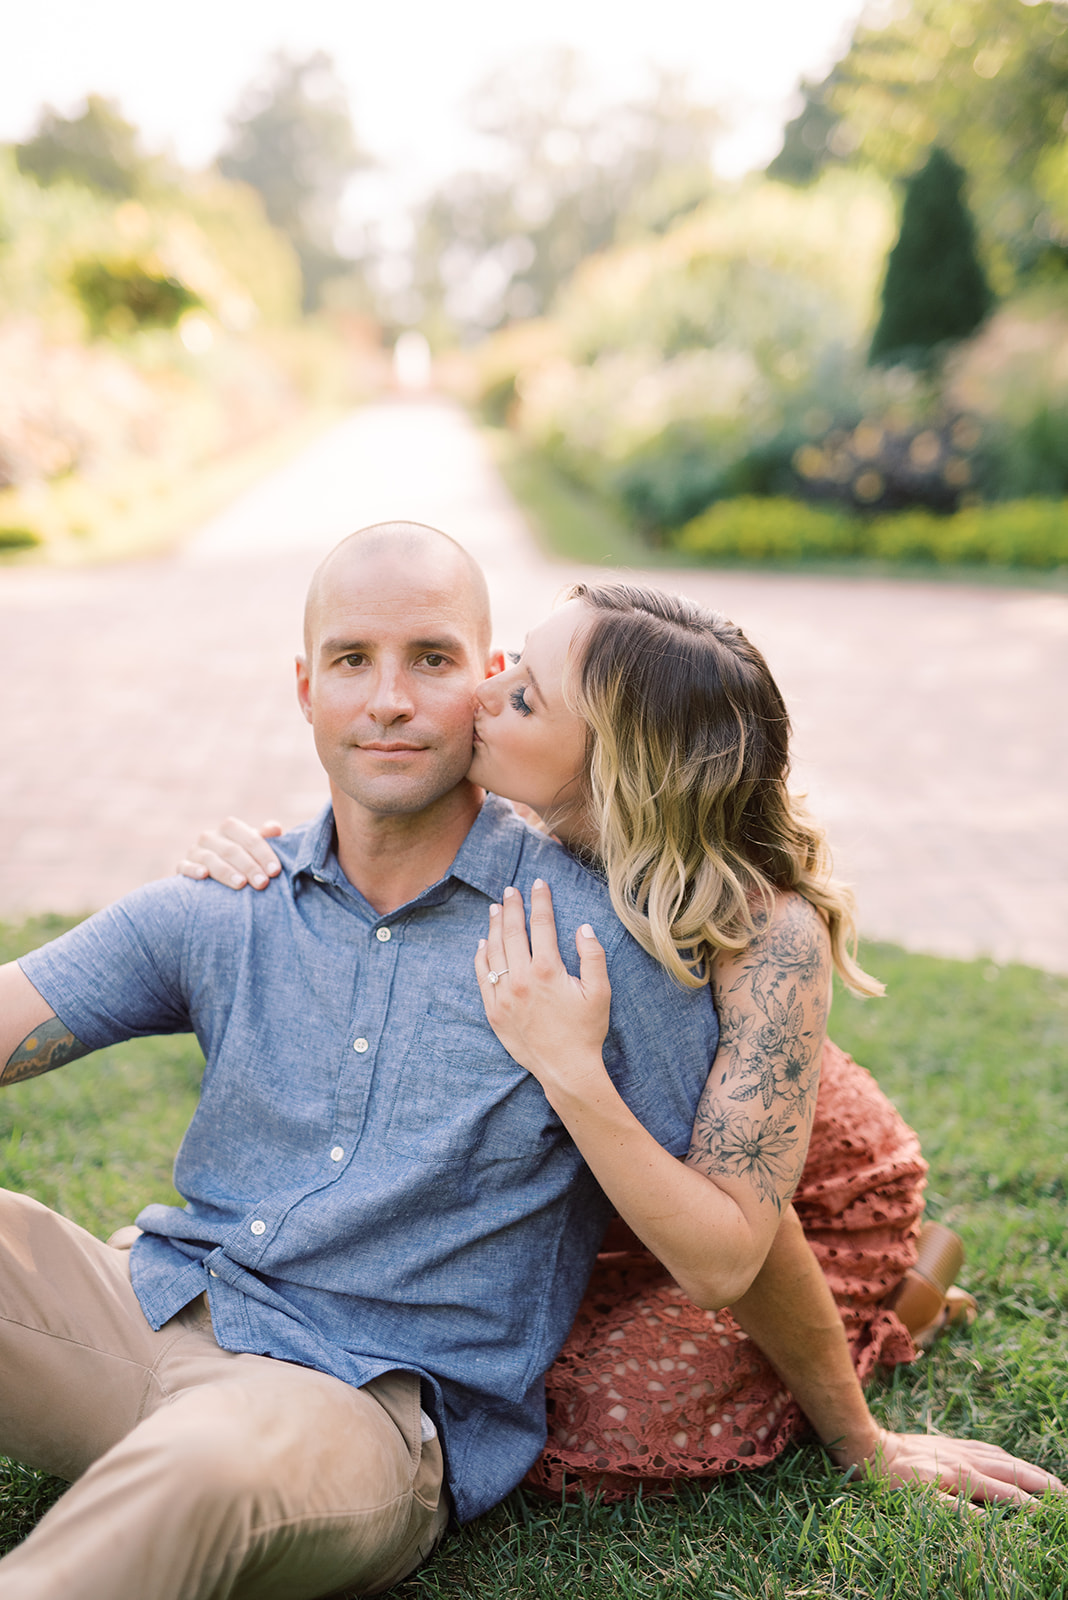 Jasmine kisses Joel's cheek during their engagement session at Longwood Gardens.